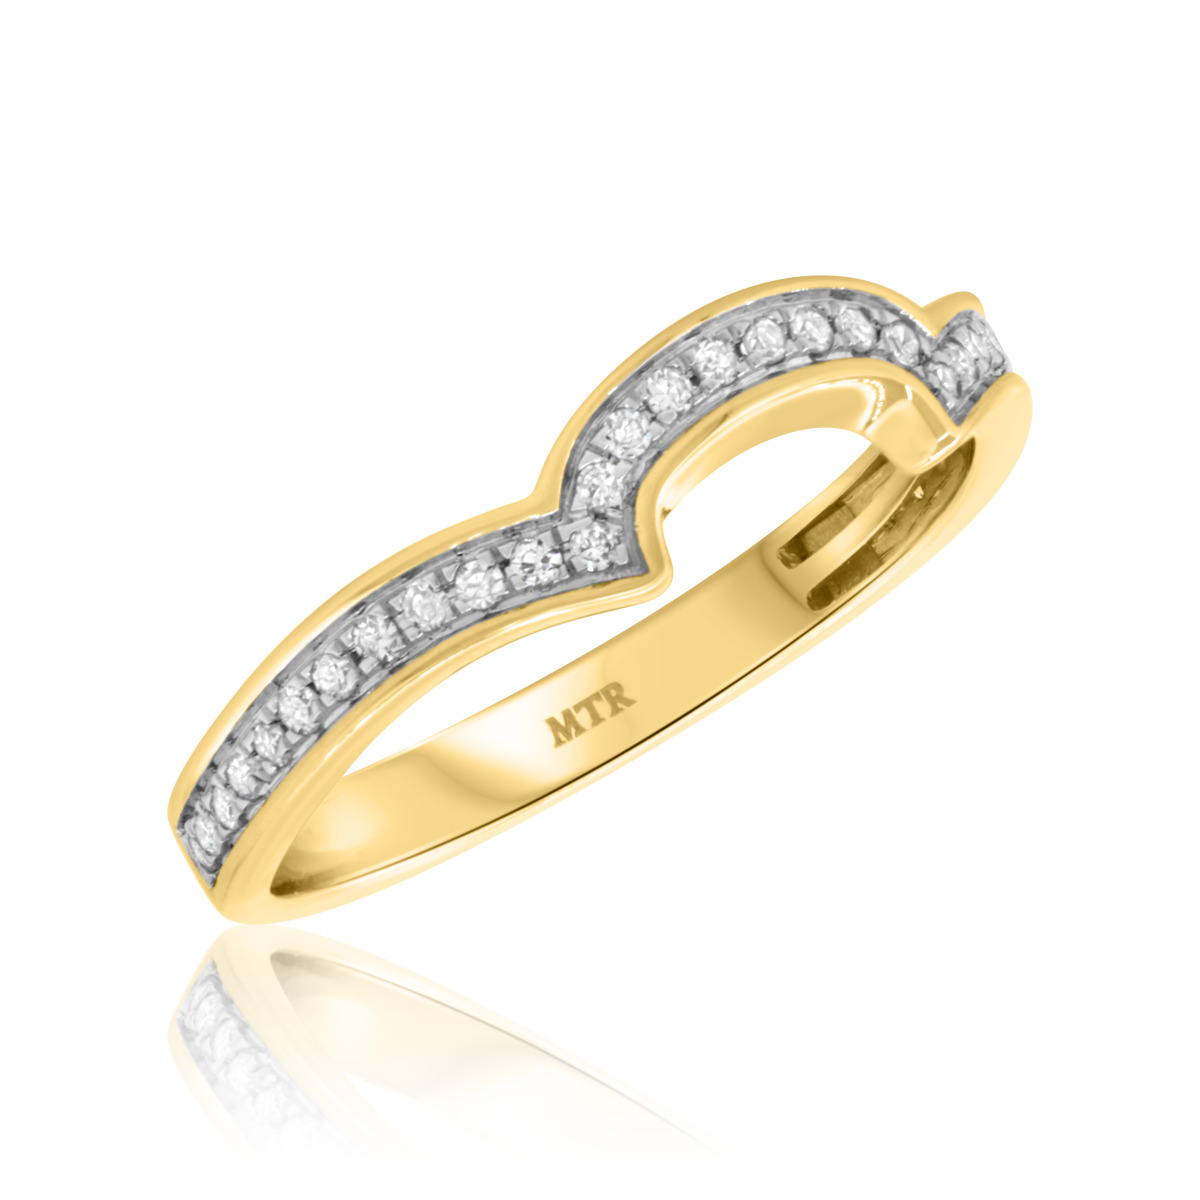 1/4 CT. T.W. Diamond Ladies Wedding Band  10K Yellow Gold